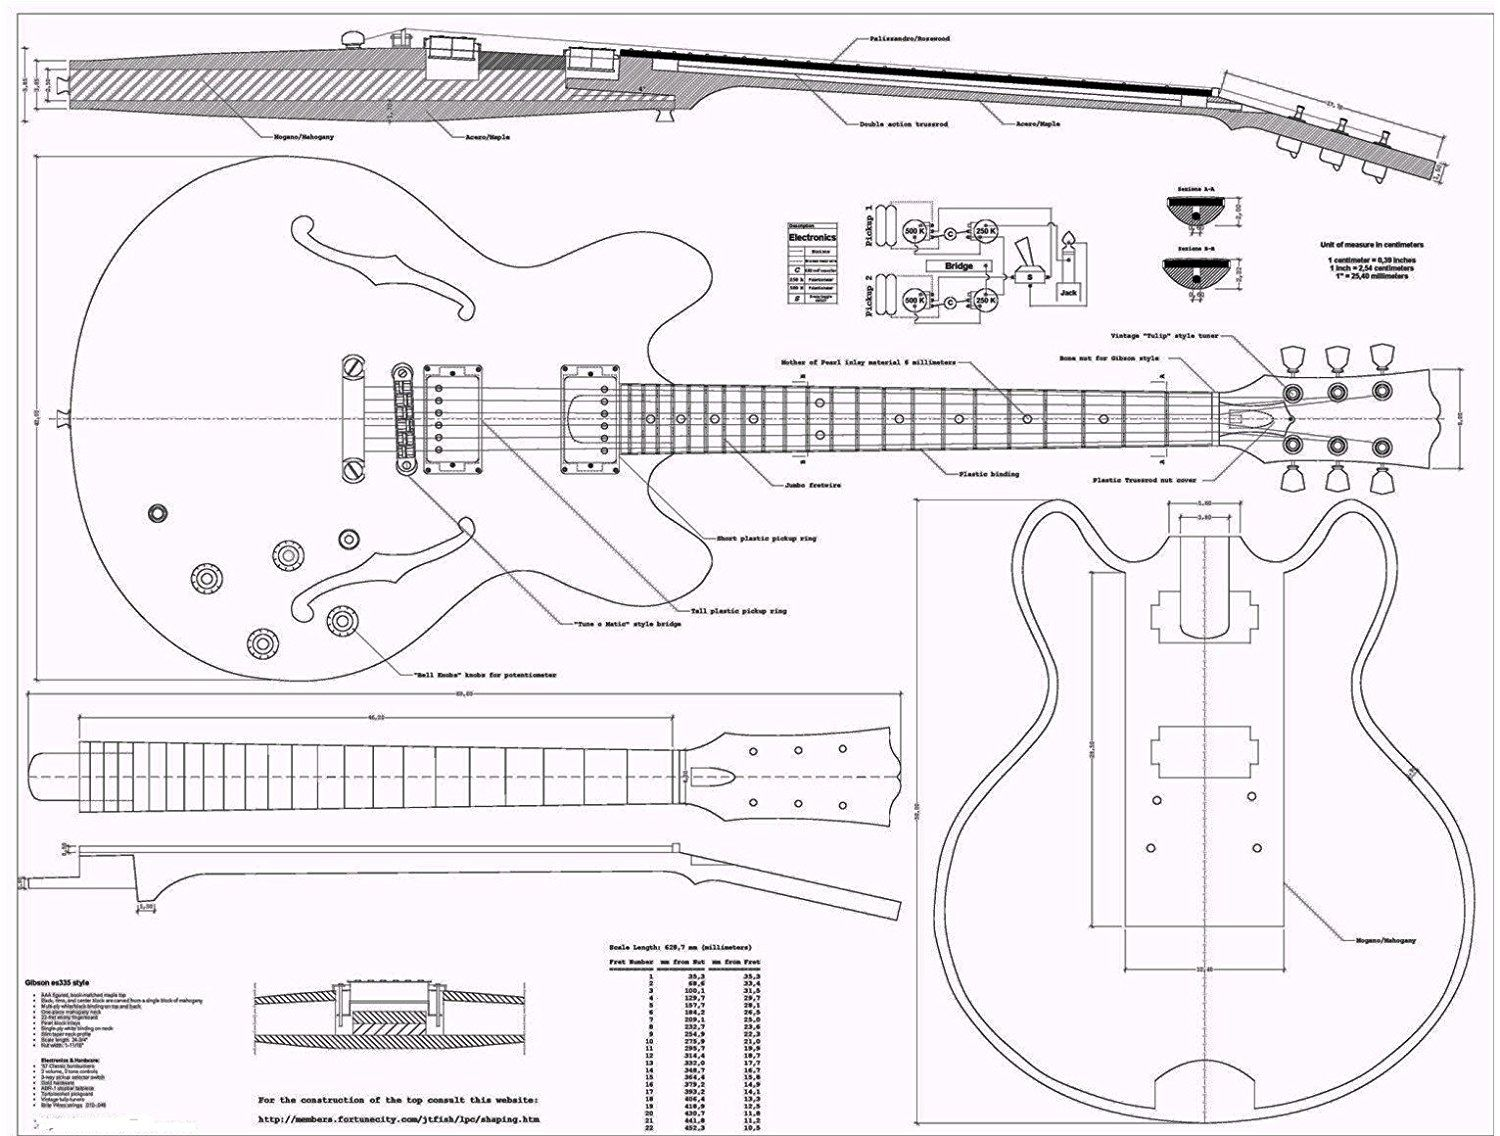 gibson es335 jazz guitar plans full scale how to buildgibson es335 jazz guitar plans full scale [ 1500 x 1136 Pixel ]